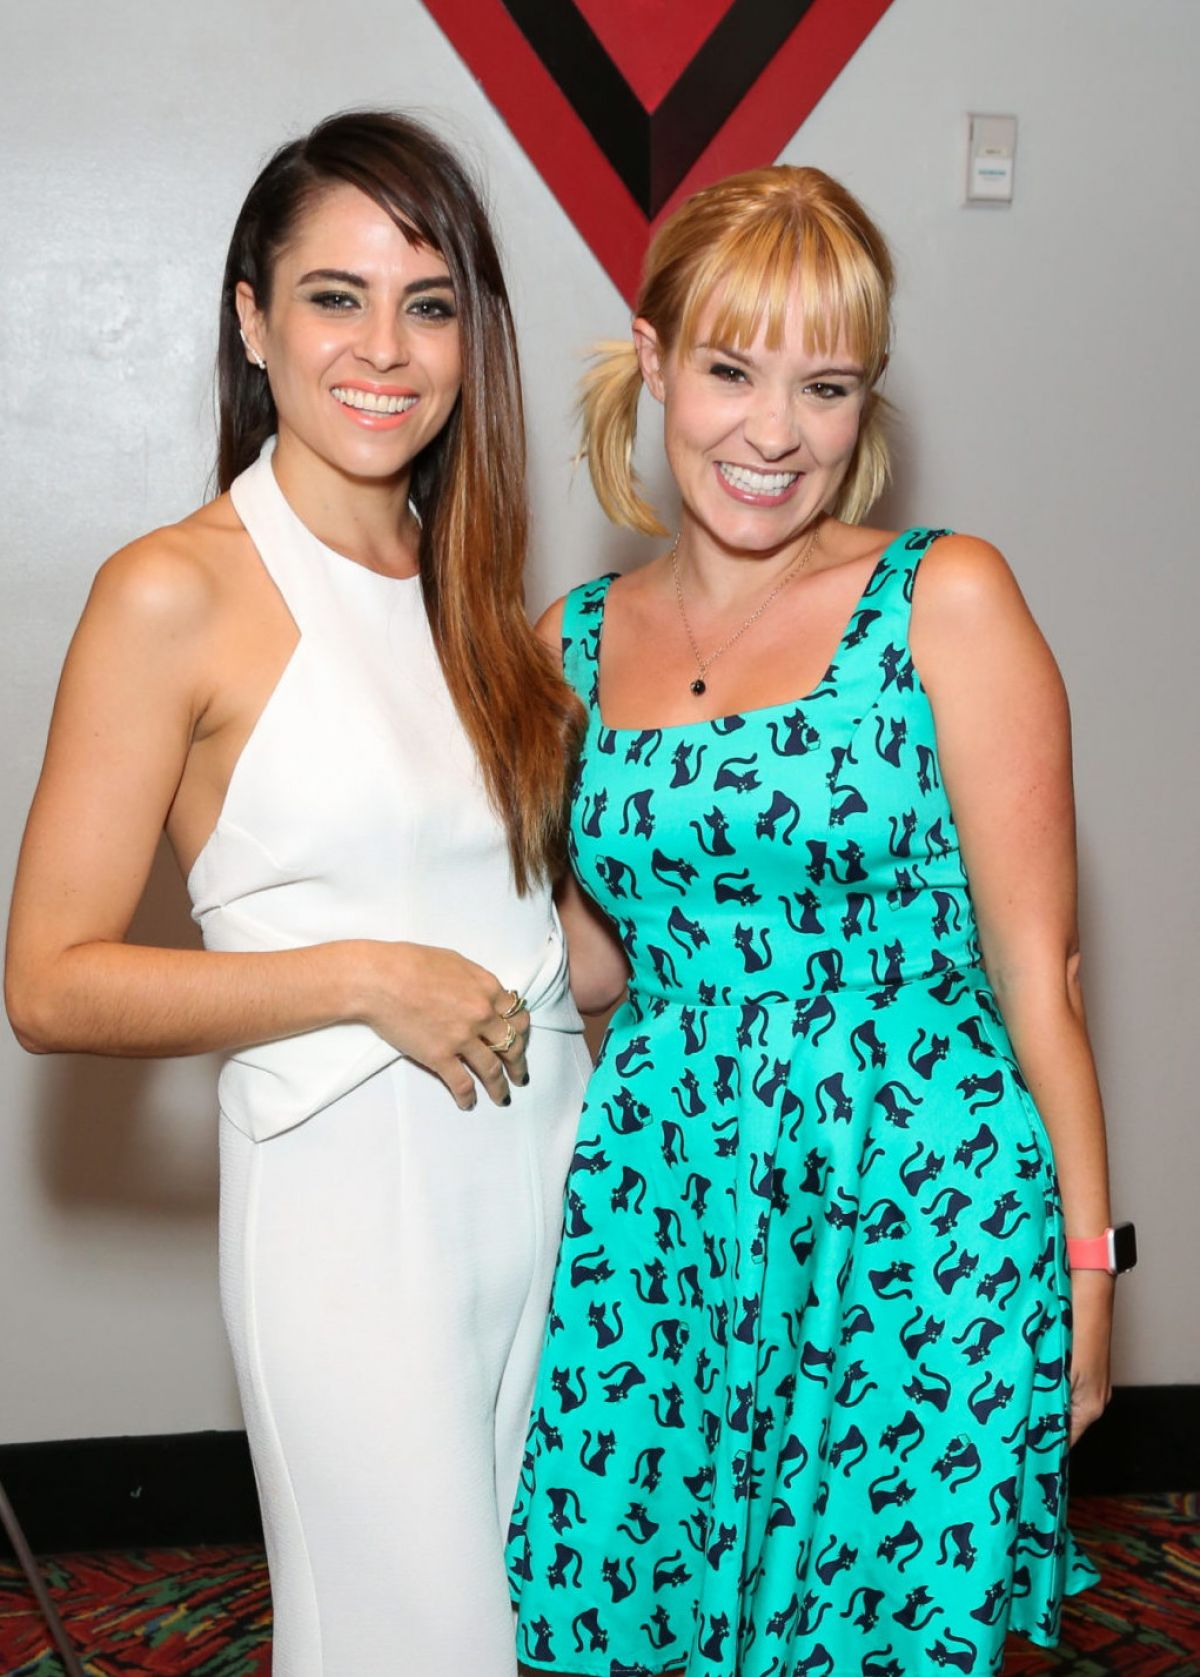 BREA GRANT and ASHLEY C WILLIAMS at Julia Screening in Burbank 10/24/2015